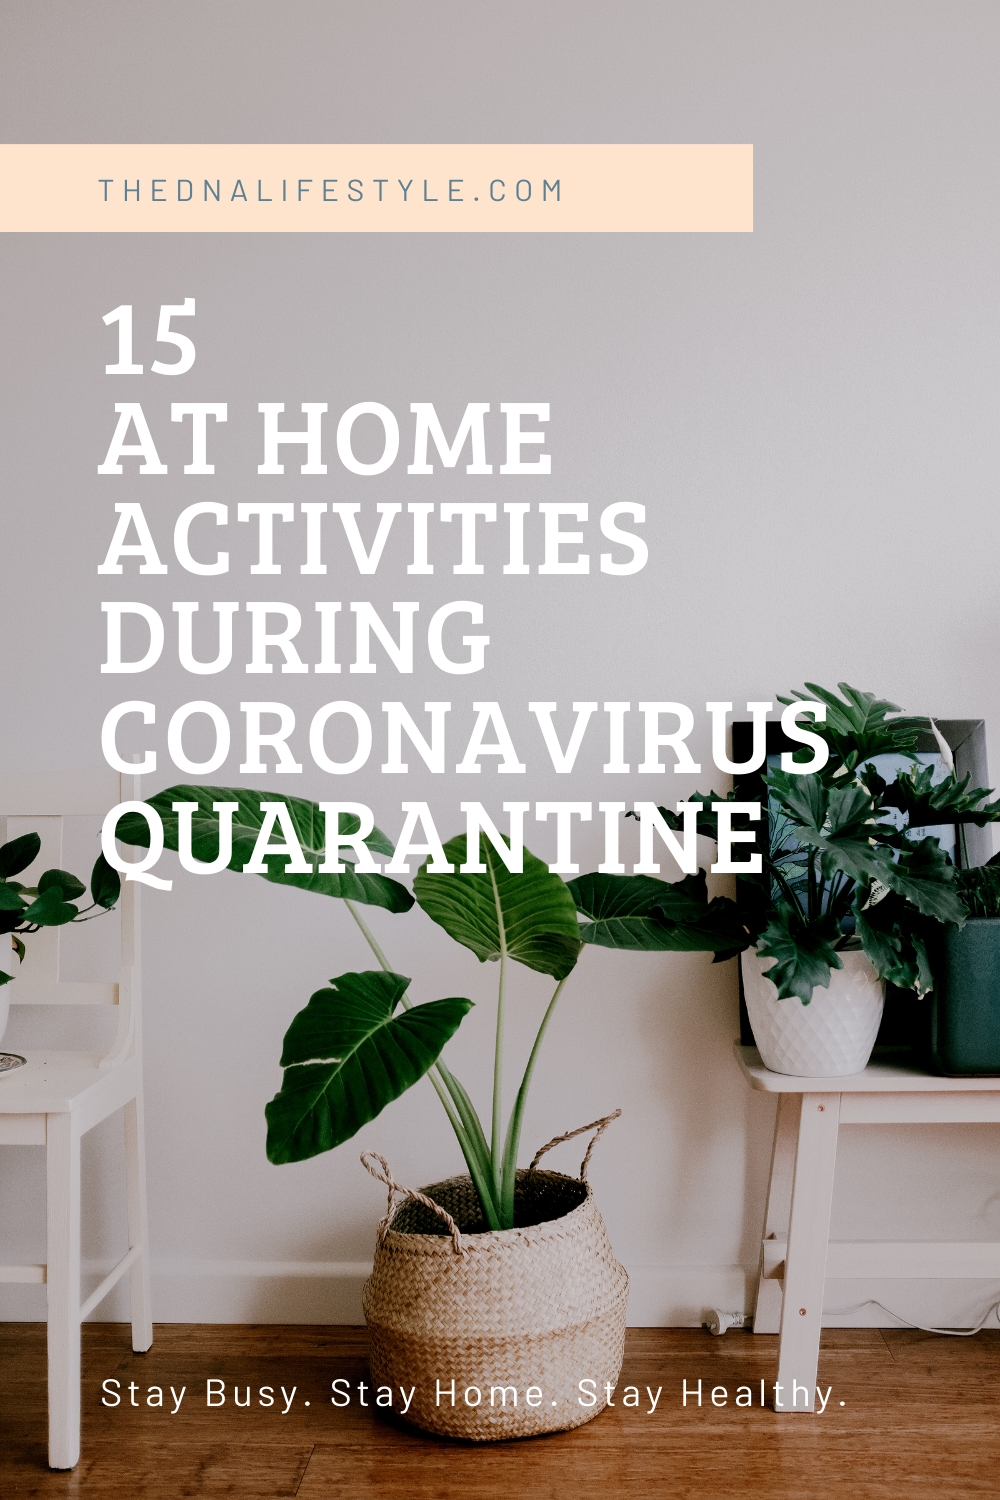 15 at home activities to do during coronavirus quarantine